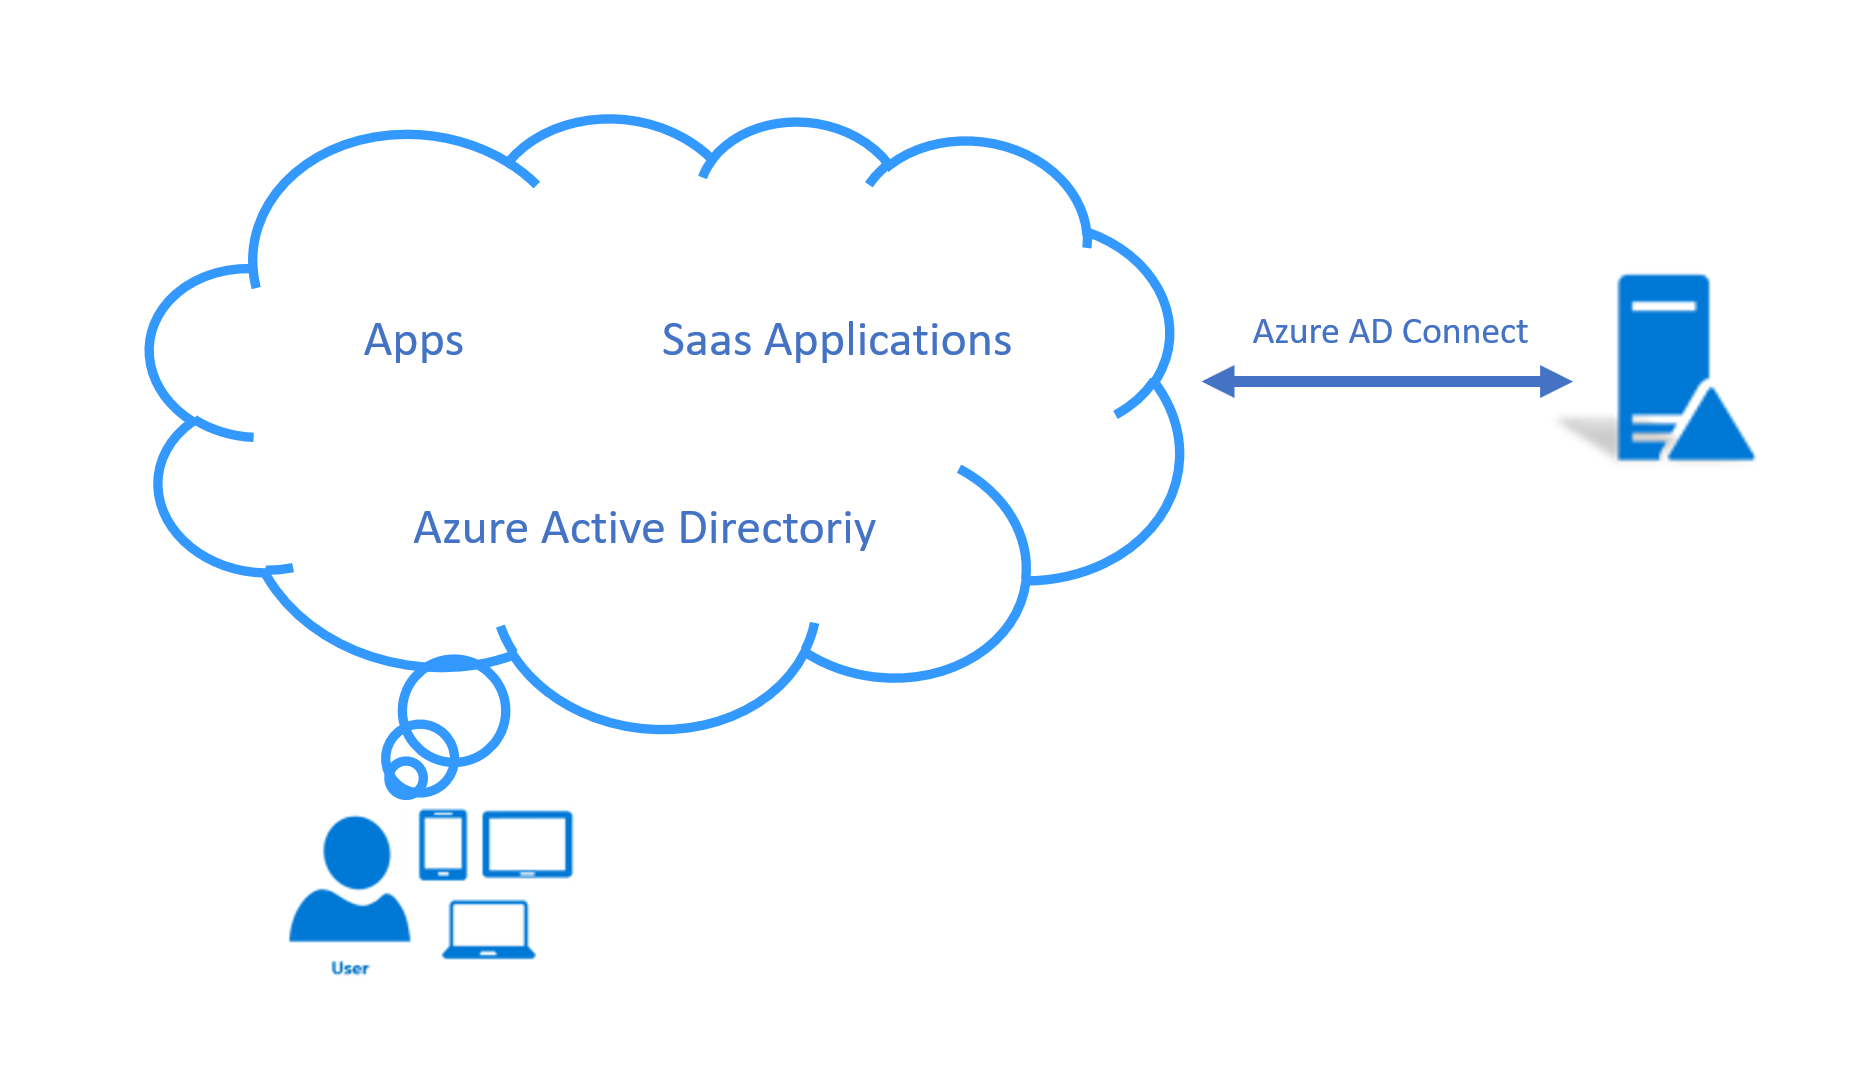 Monitoring Services ‐ Using Wazuh to Monitor Microsoft Azure